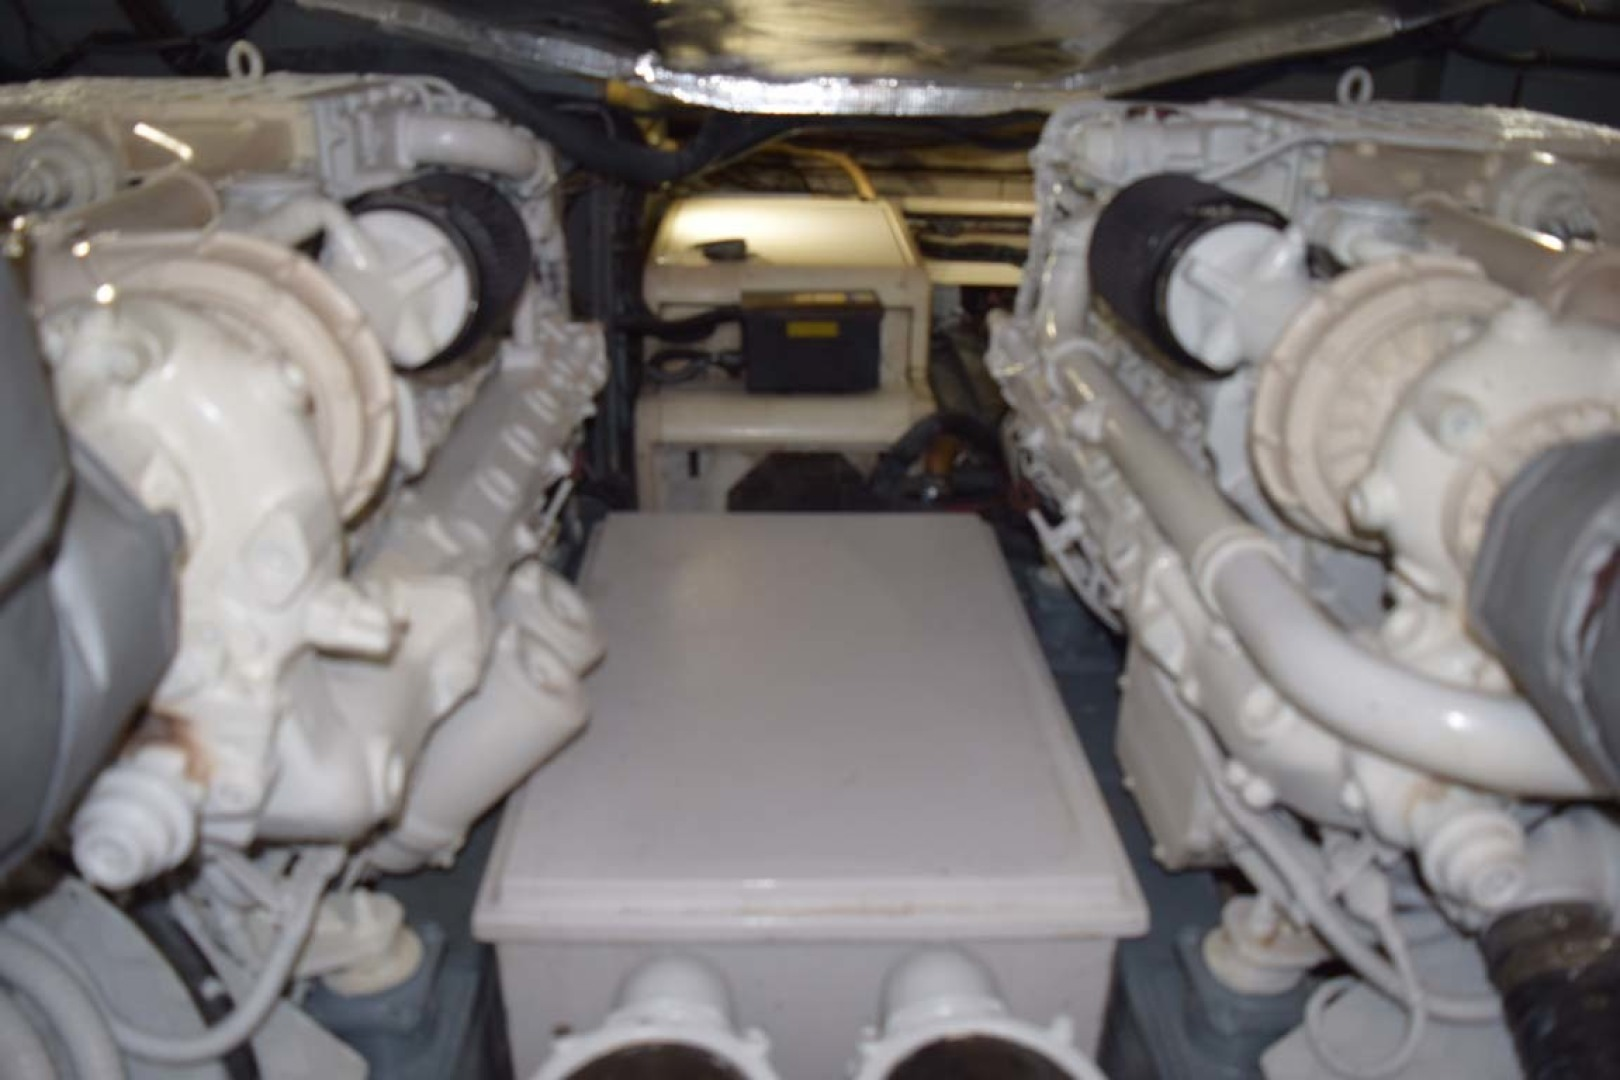 Sunseeker-Predator 2003-Low Profile PALM BEACH-Florida-United States-Engine Room-1576397 | Thumbnail